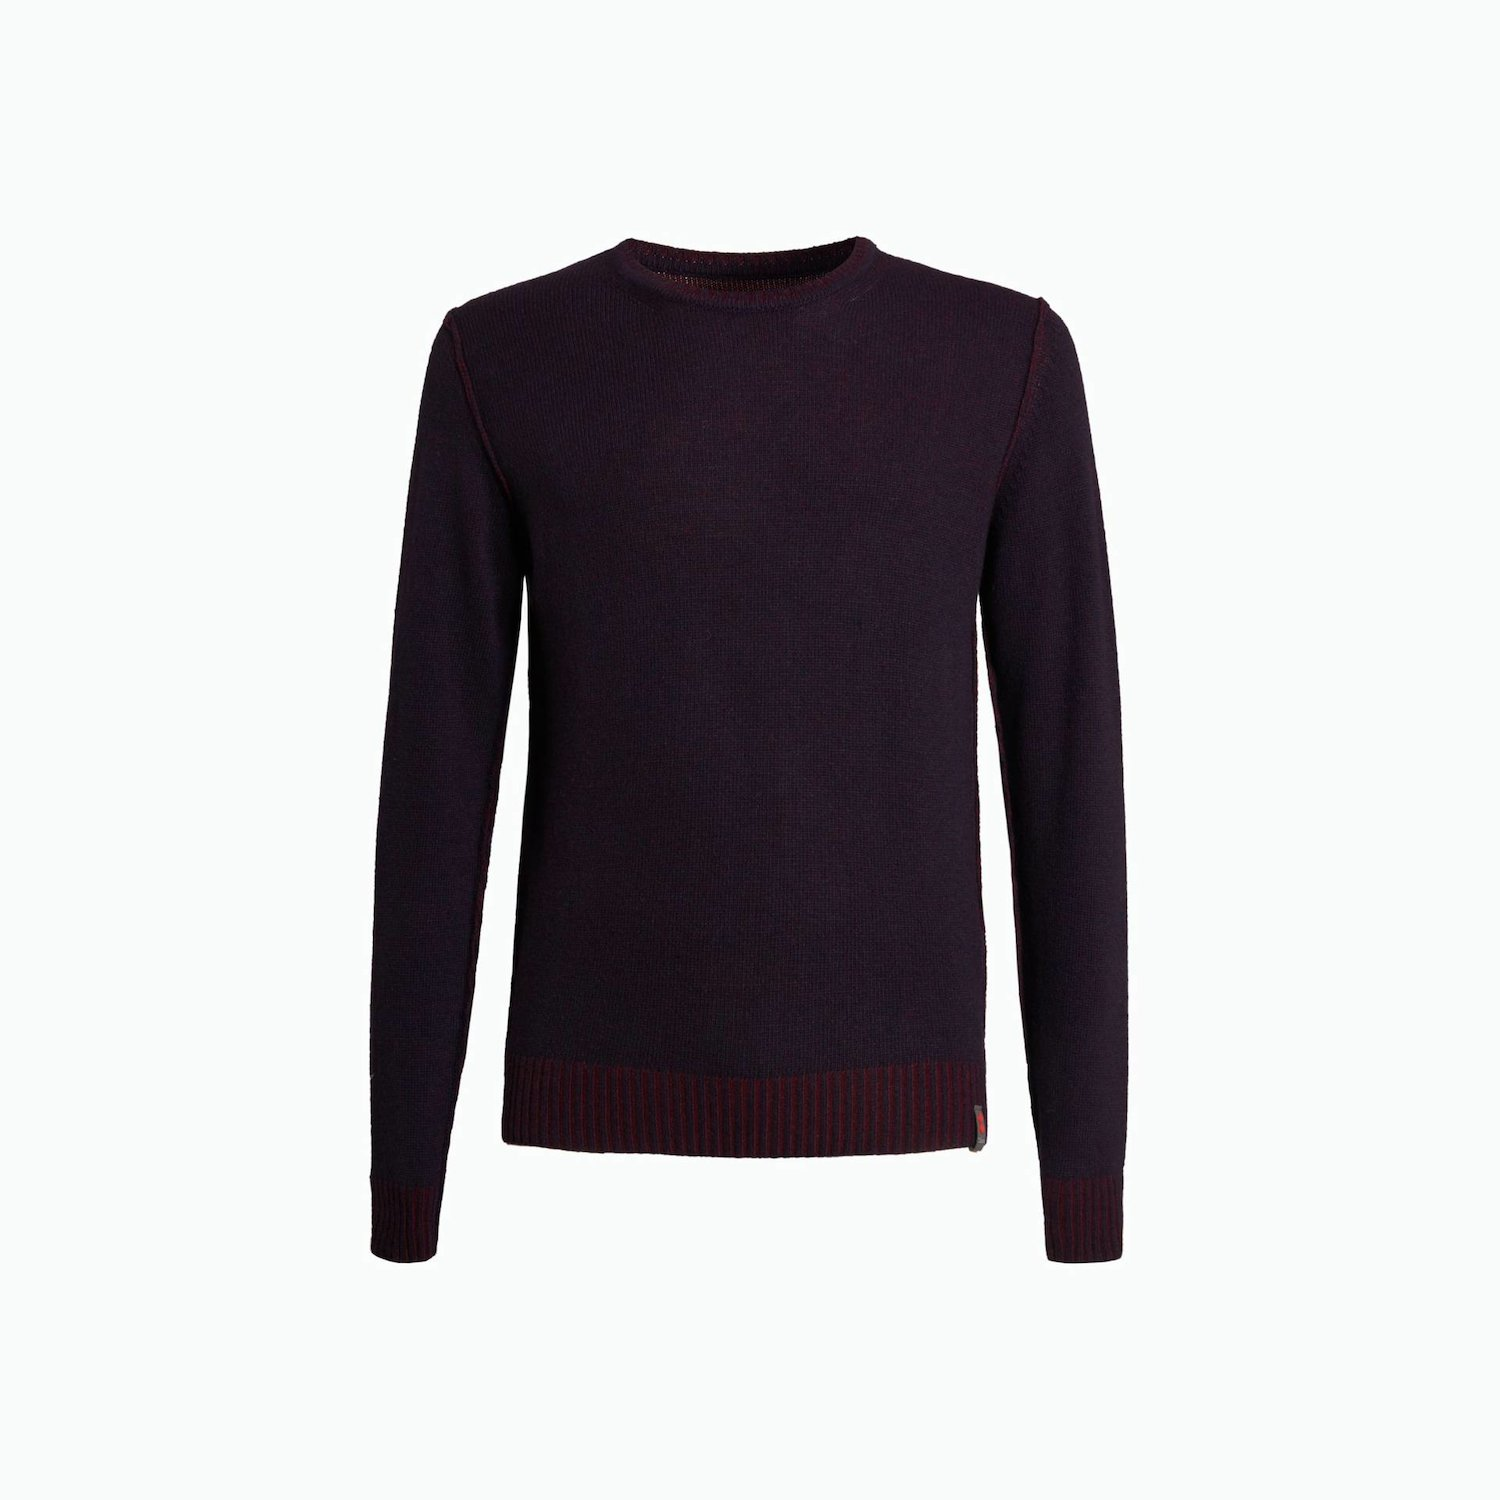 B82 Jumper - Navy / Bordeaux